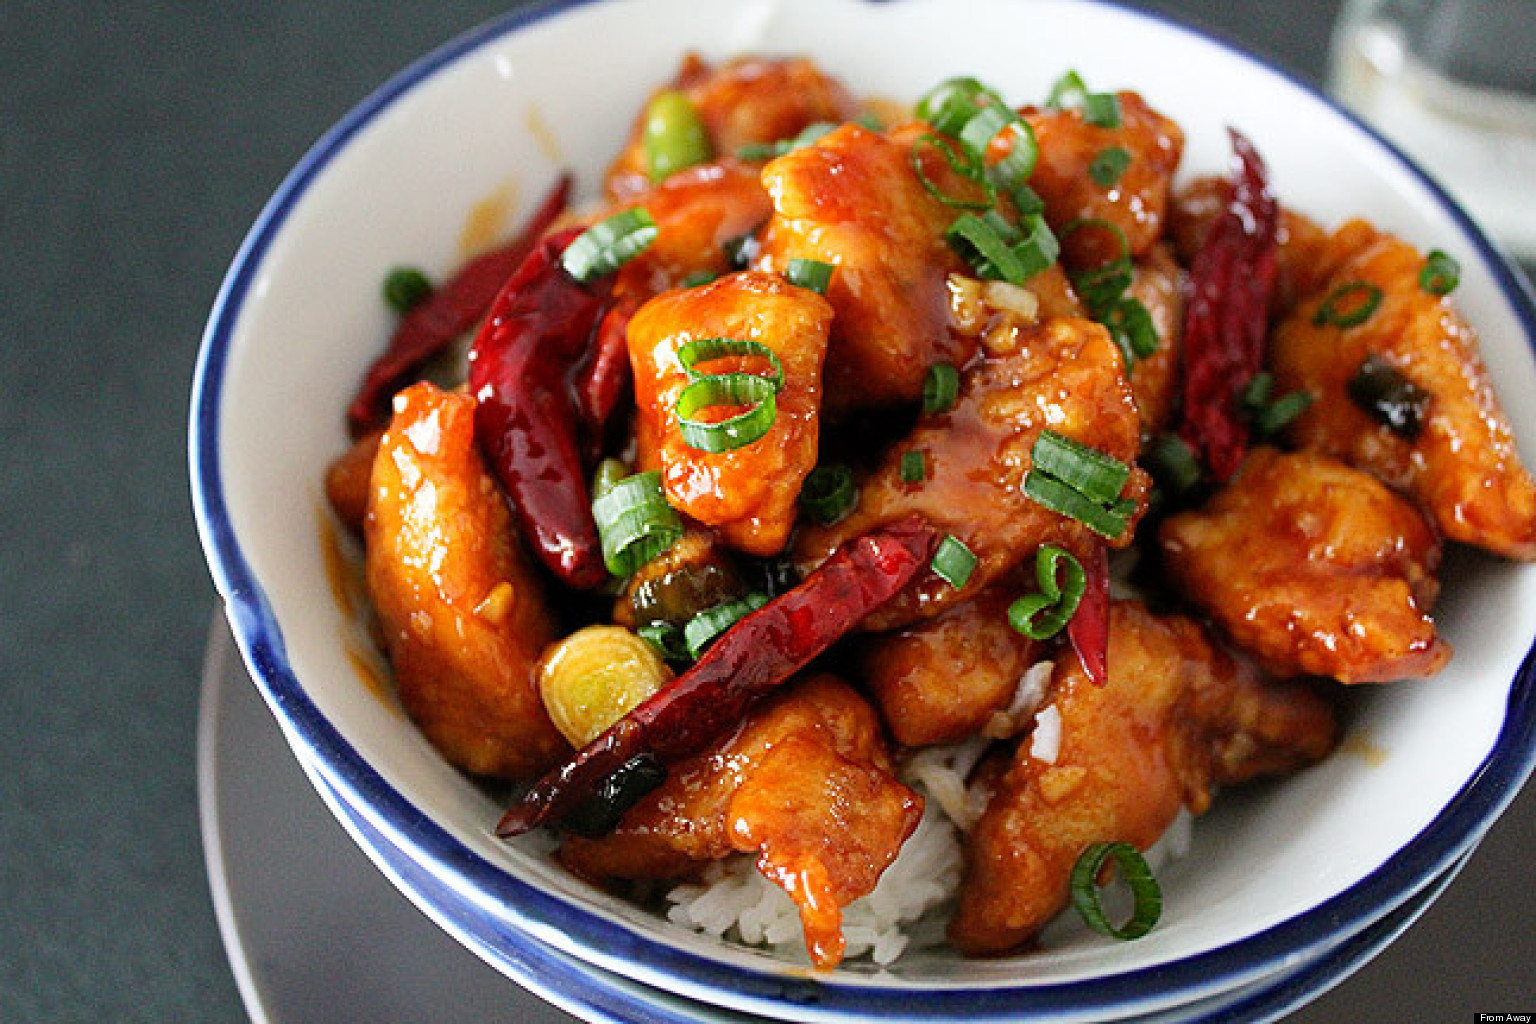 Chinese takeout recipes to make at home photos huffpost forumfinder